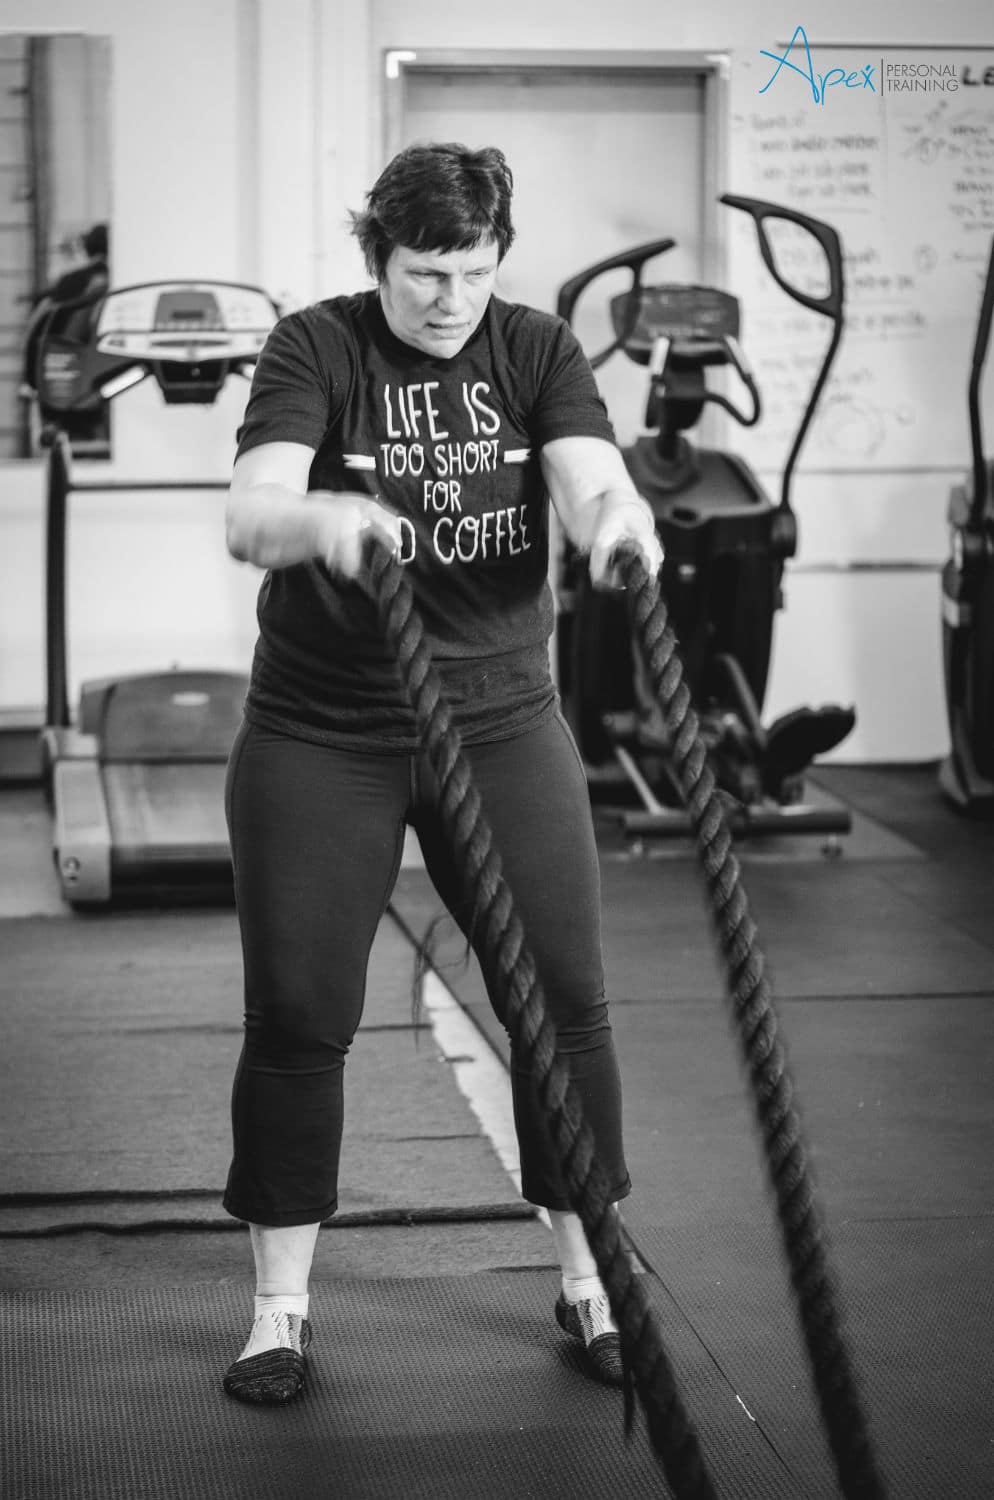 Apex personal training st louis park mn we know were not for everyone but if you choose apex well guide you every step of the way to looking and feeling your best 1betcityfo Images